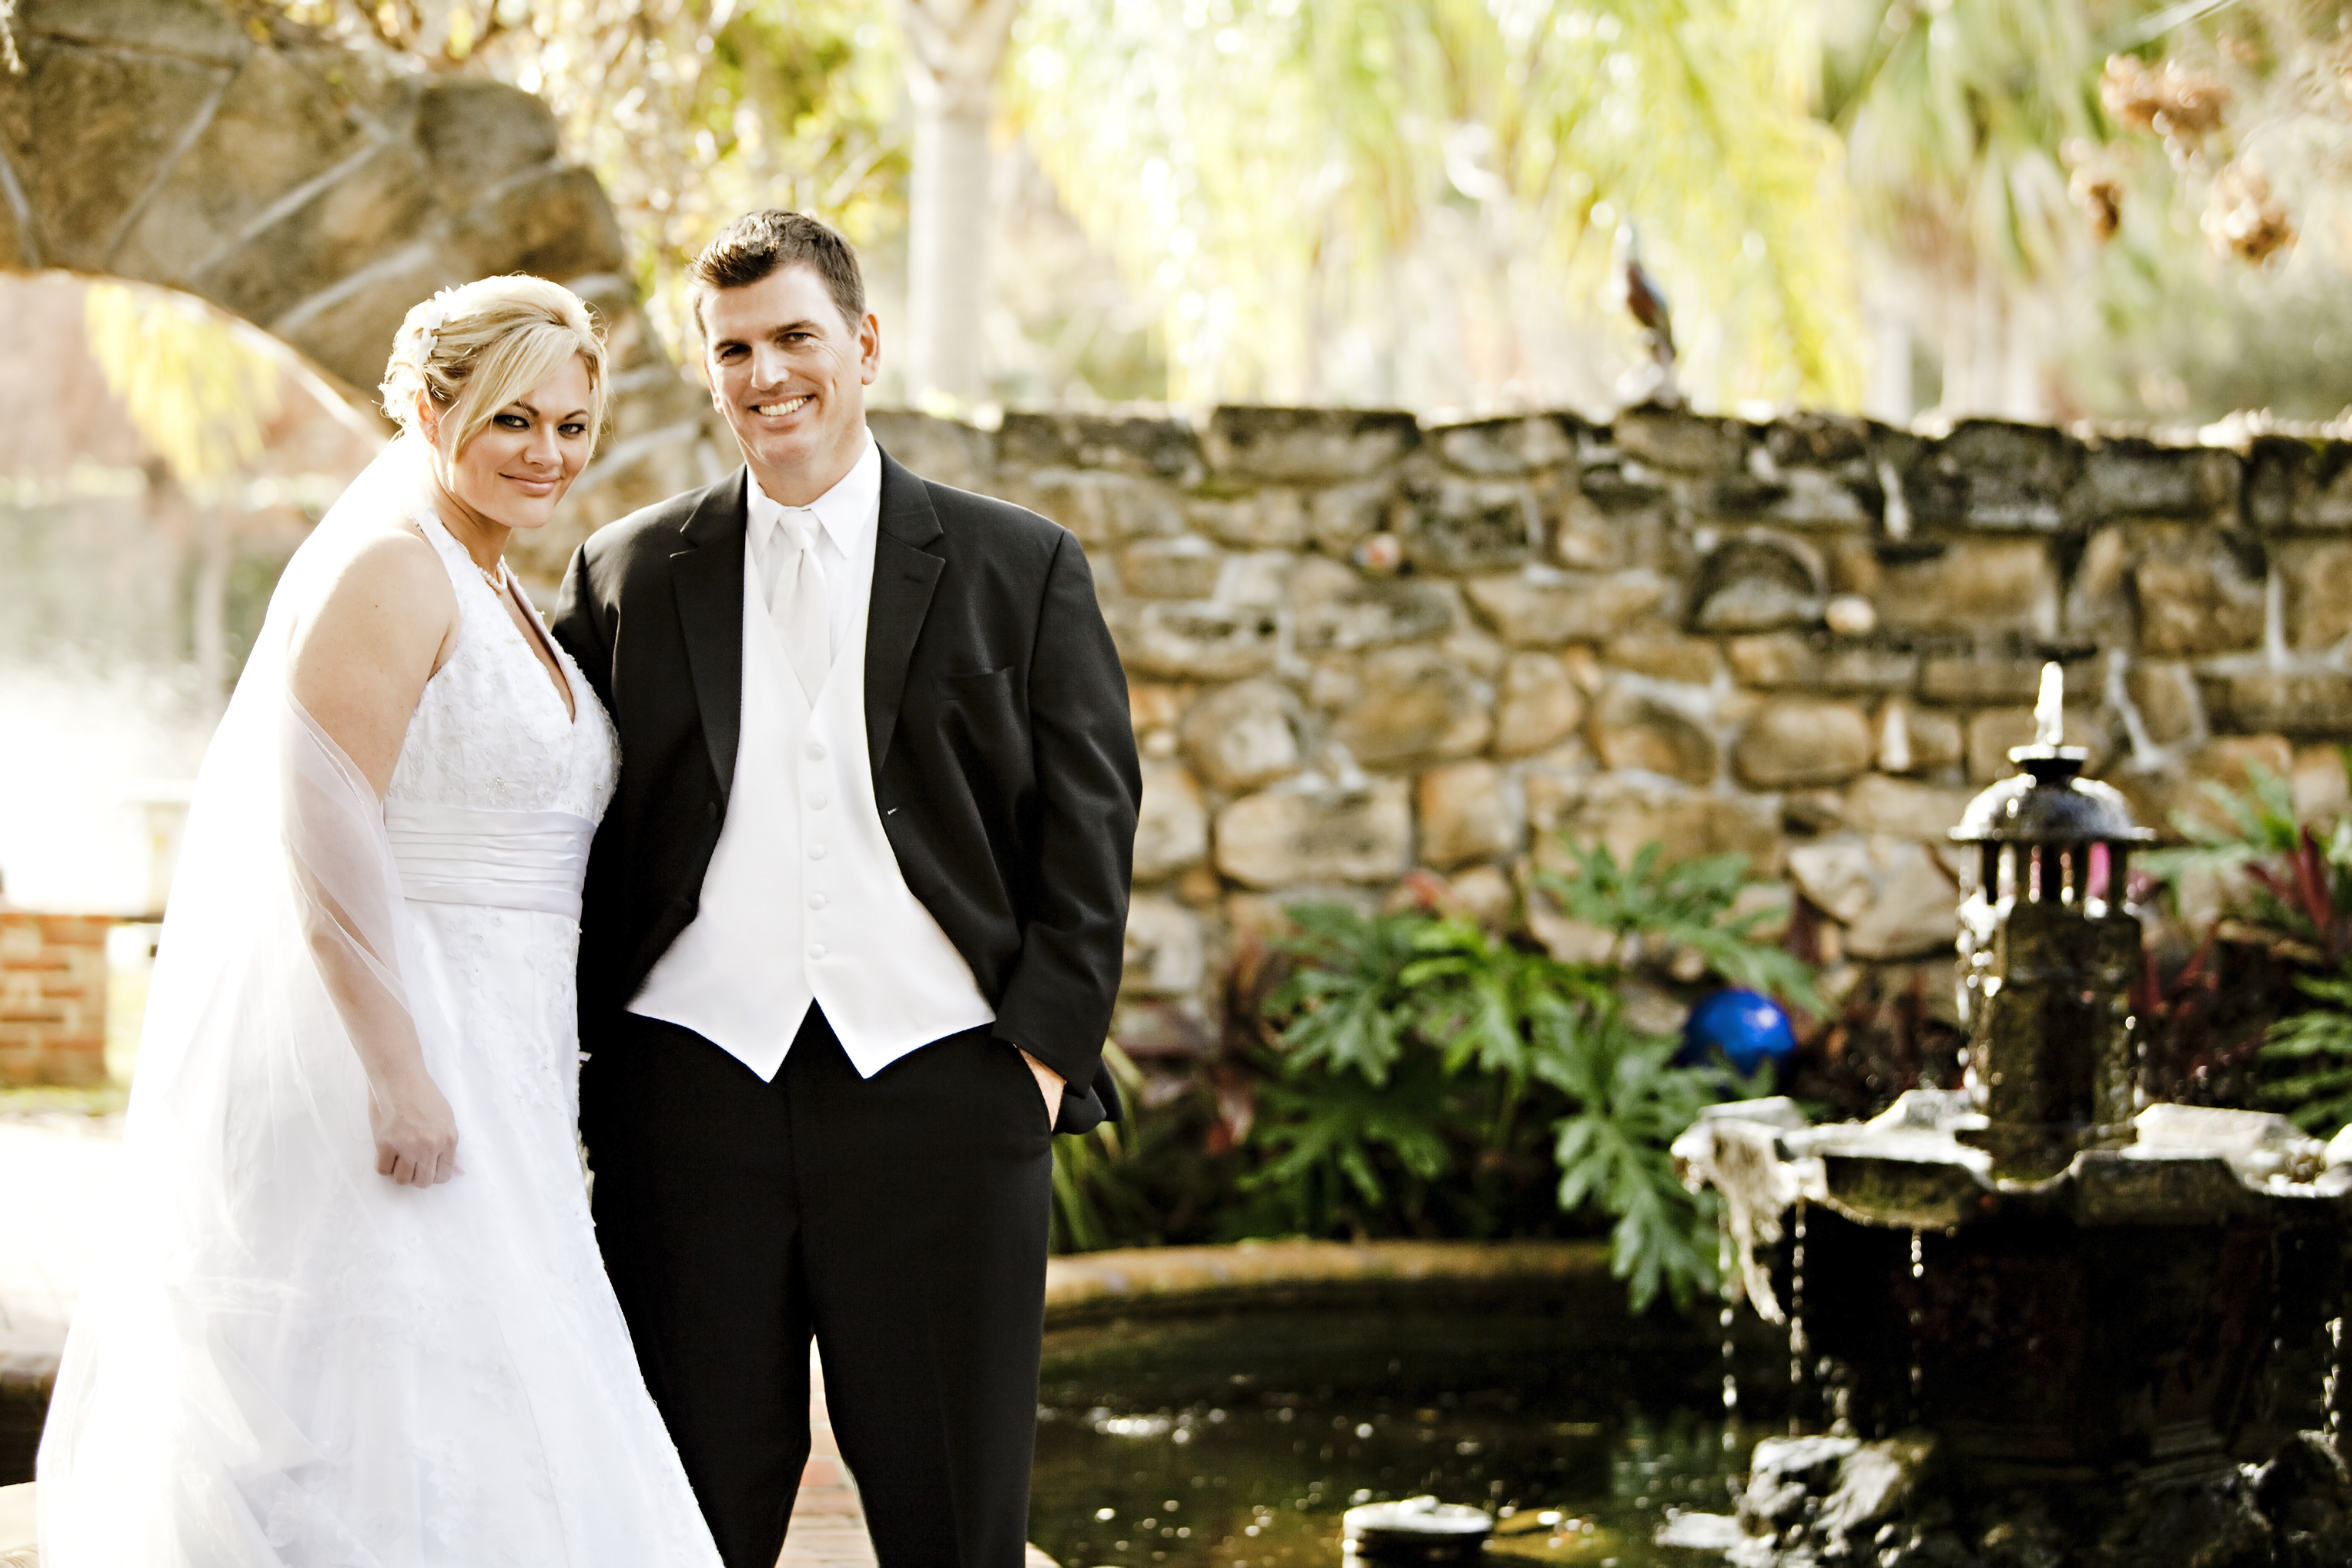 Man and woman in their wedding outfit with brown wall in the background near fountain and pond during daytime photo